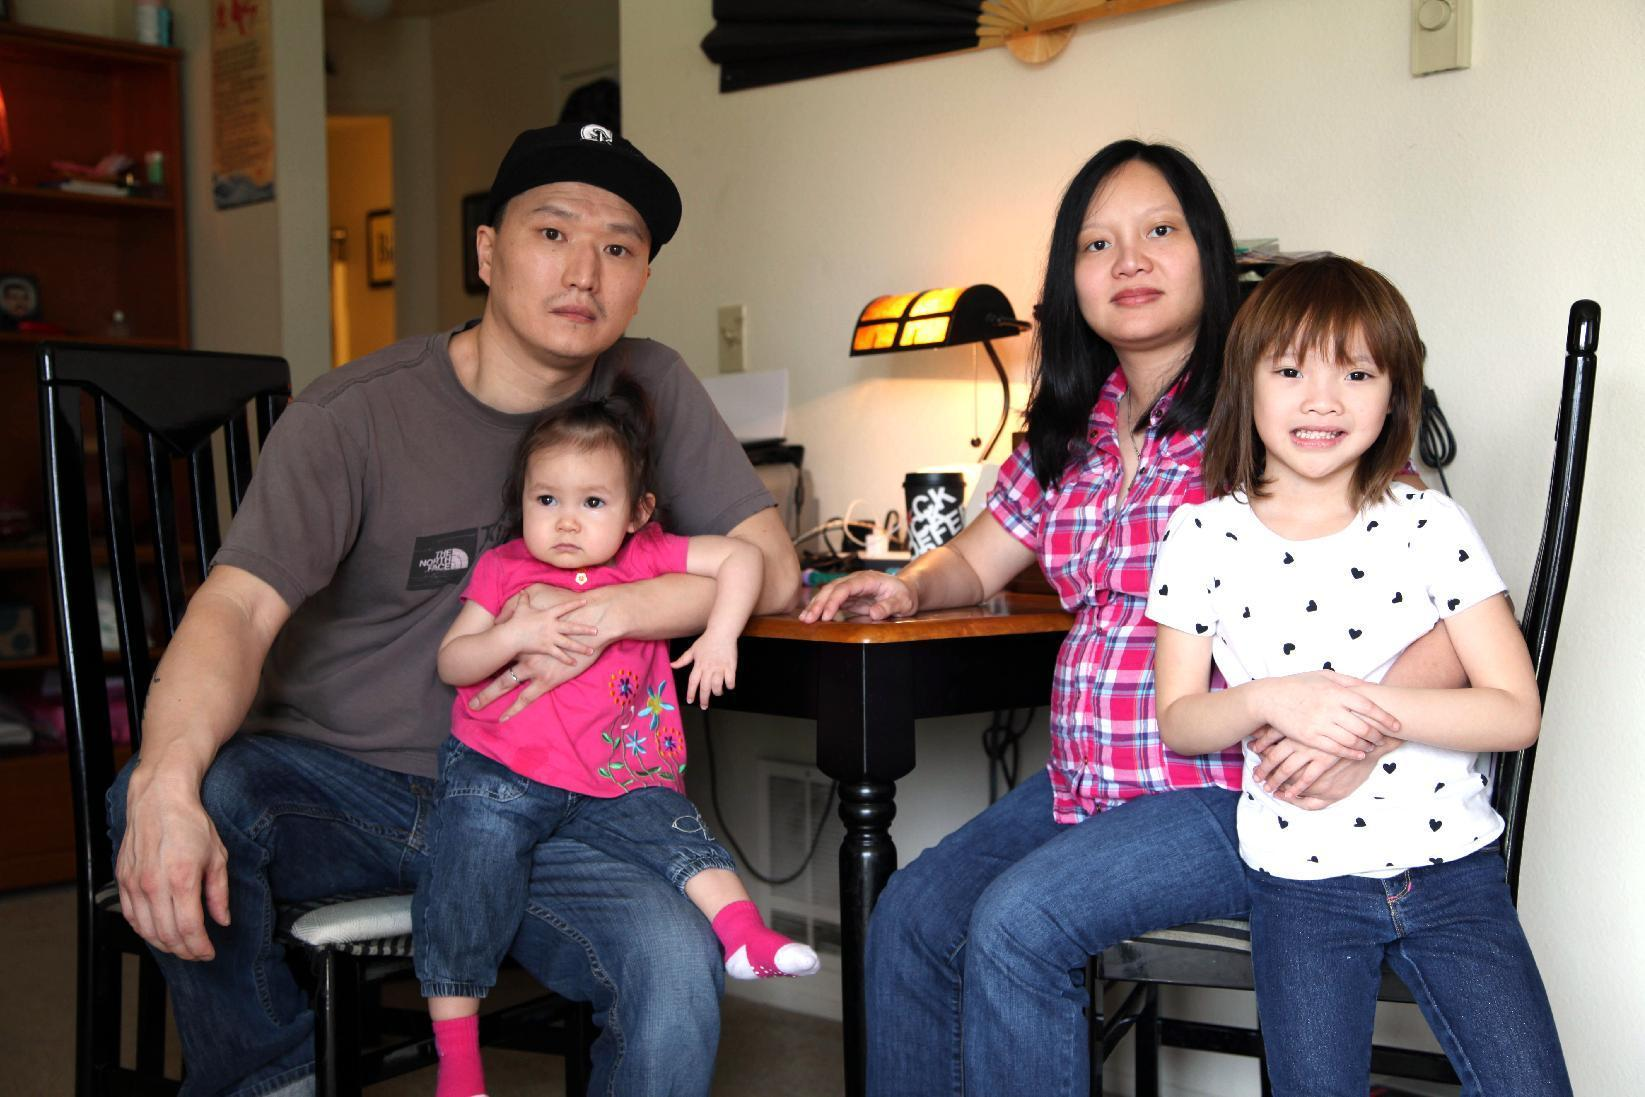 Adoptee from South Korea faces deportation from US